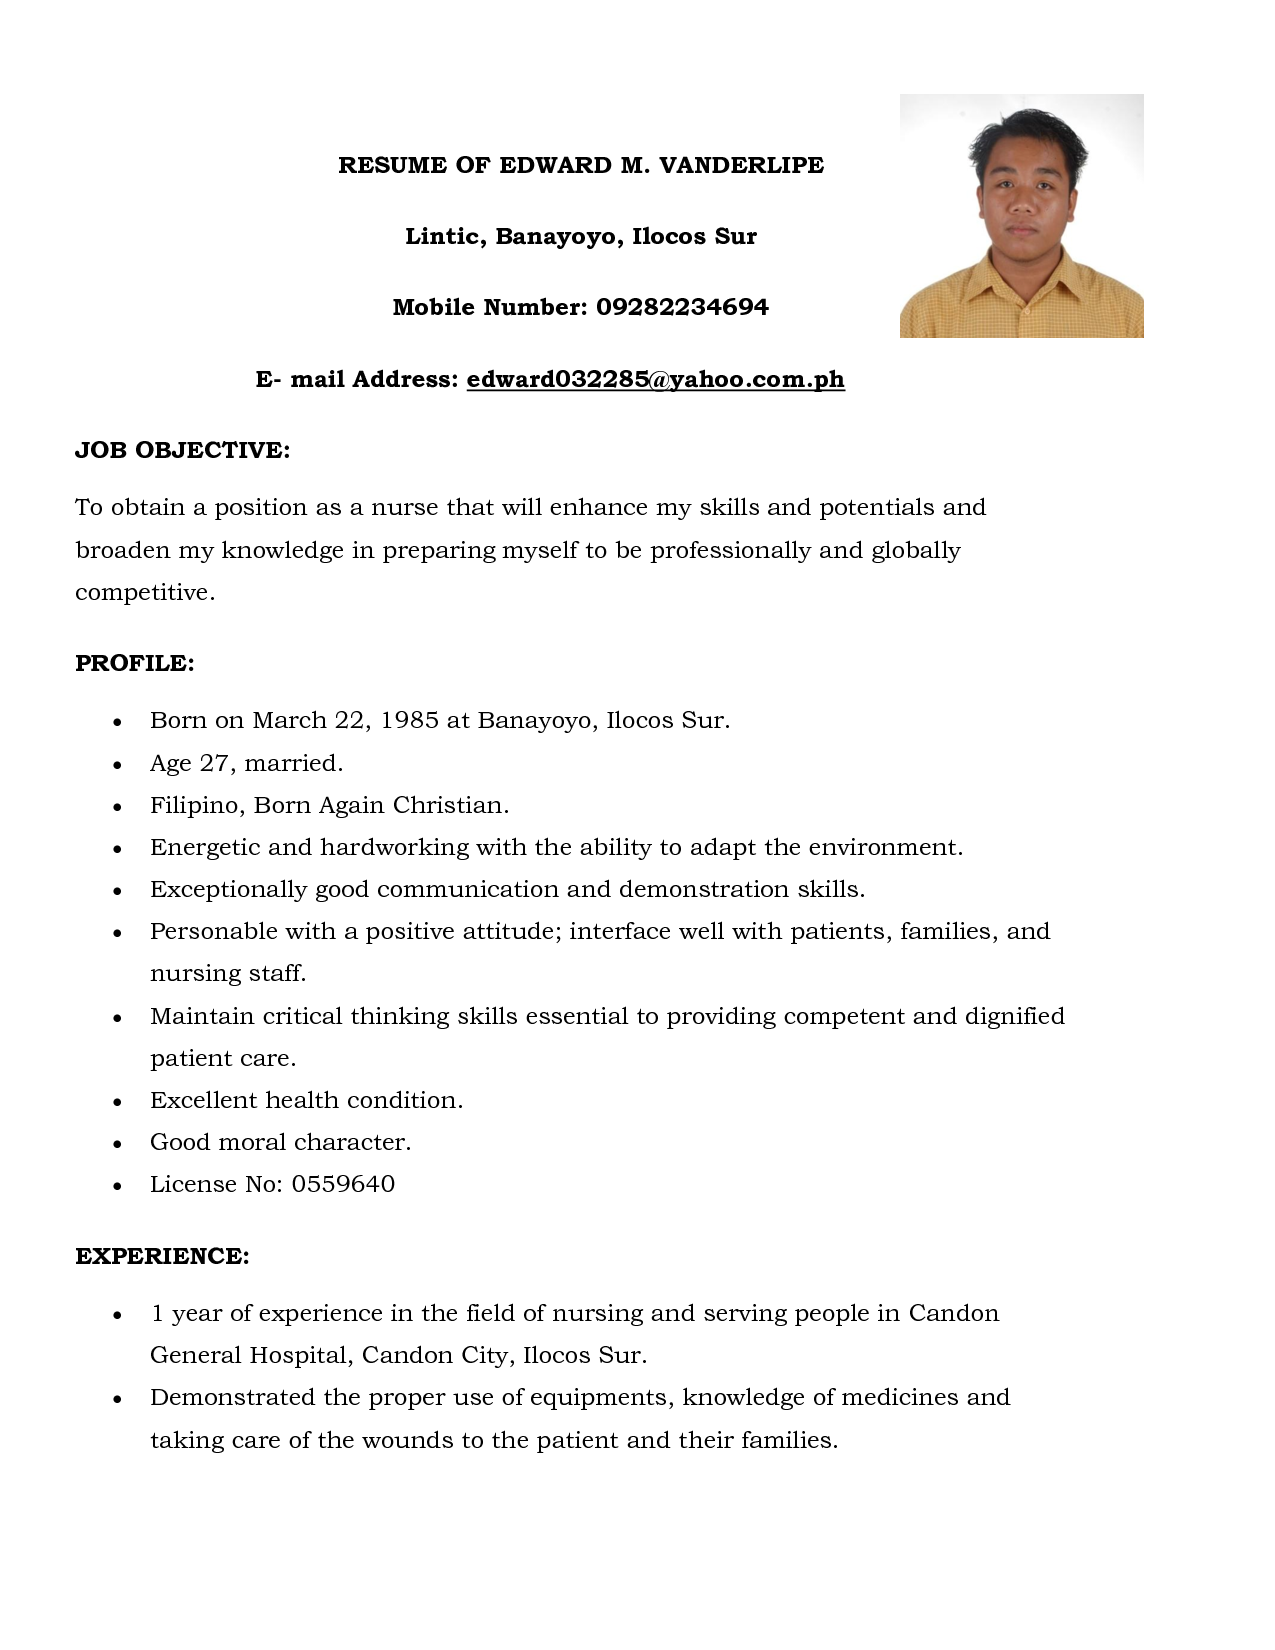 new graduate rn resume cover letter engineering maintenance resume writing services